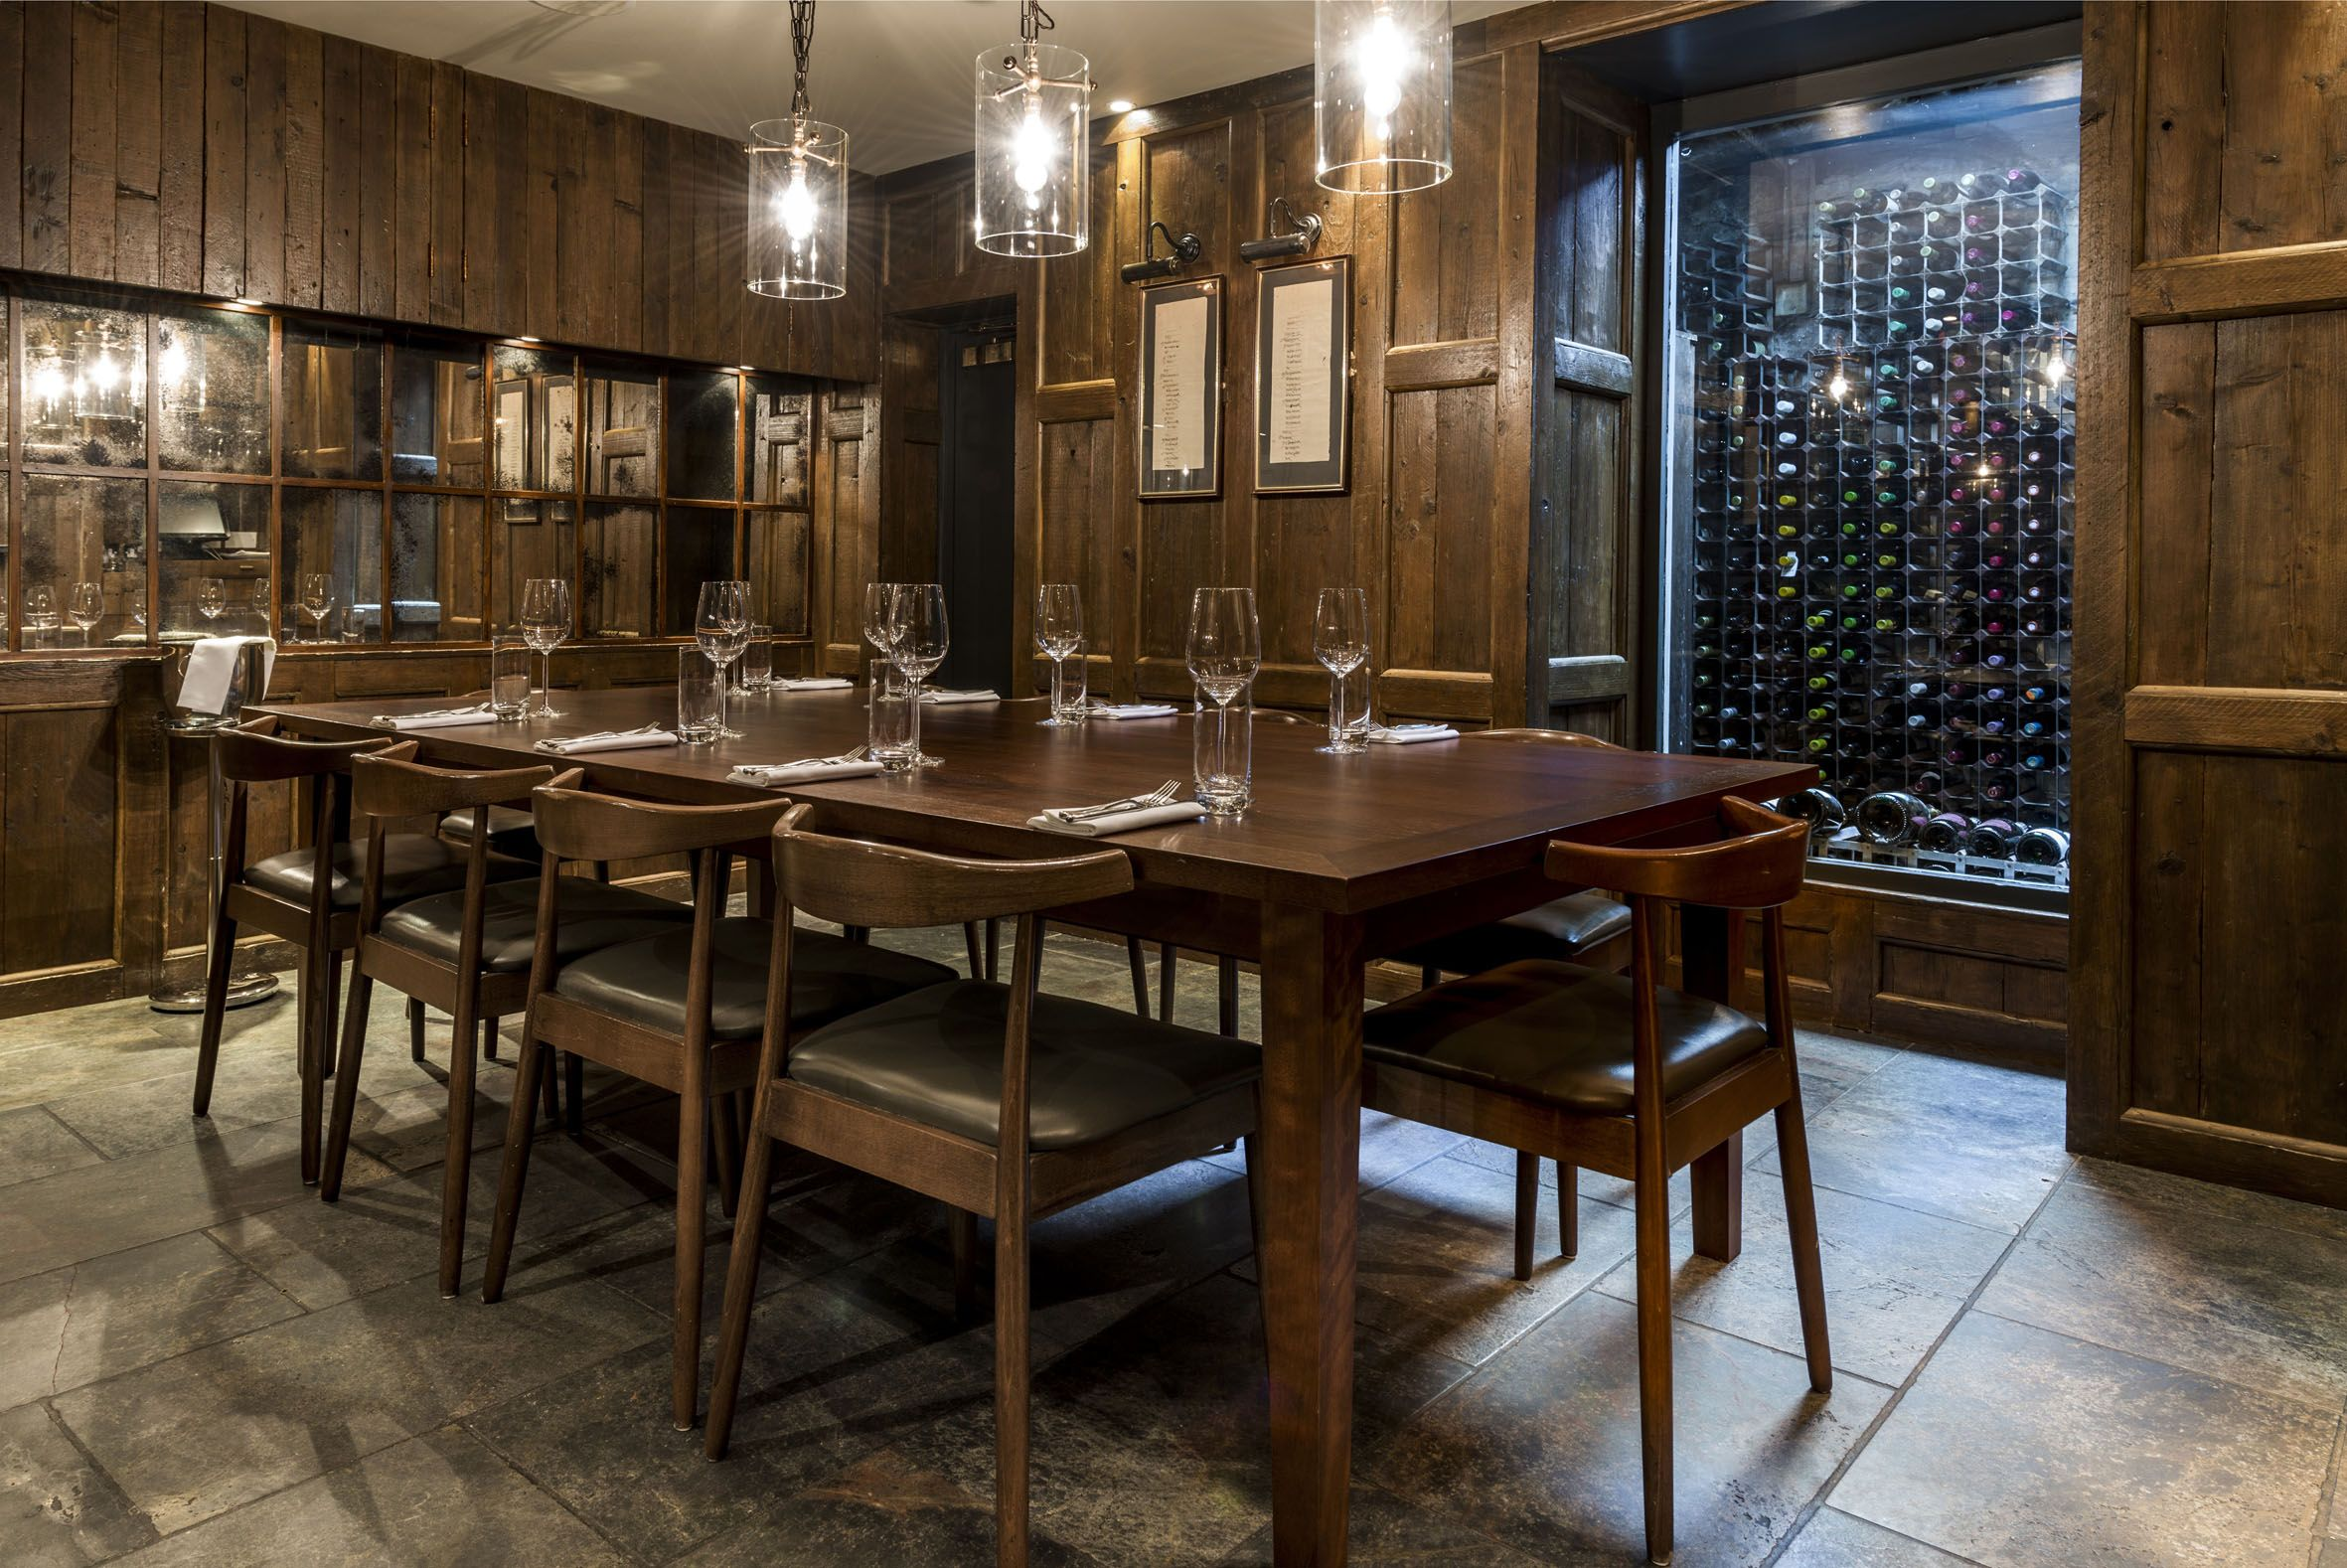 Best private dining rooms in london private dining room in for Best private dining rooms city of london